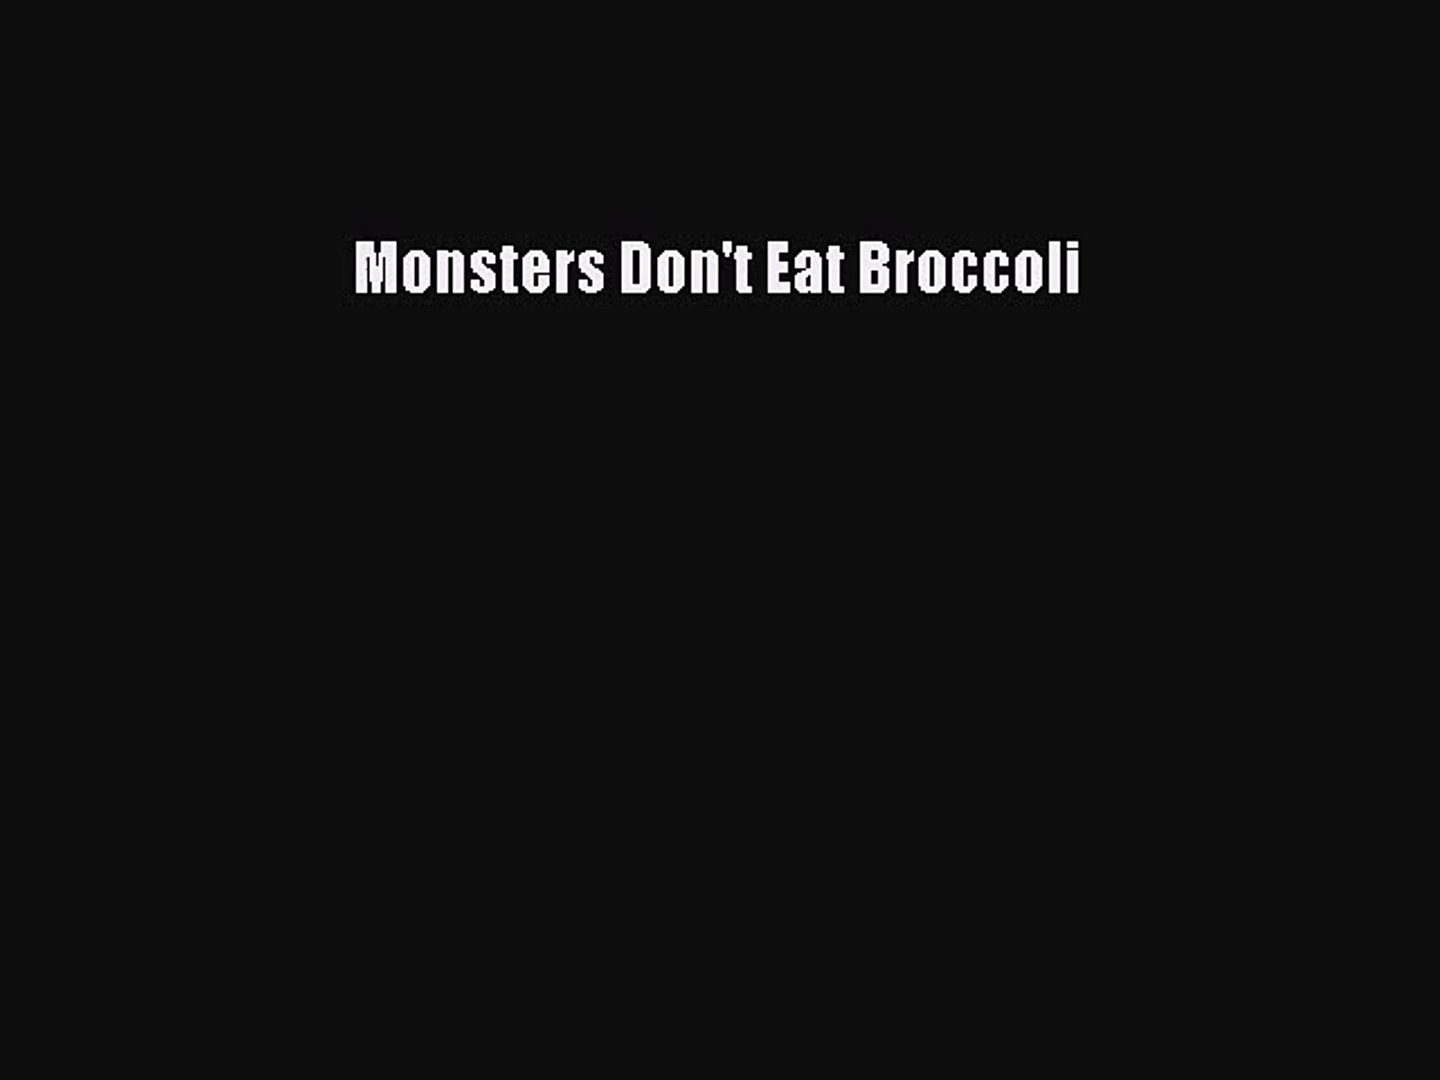 Pdf Download Monsters Don T Eat Broccoli Download Full Ebook Video Dailymotion